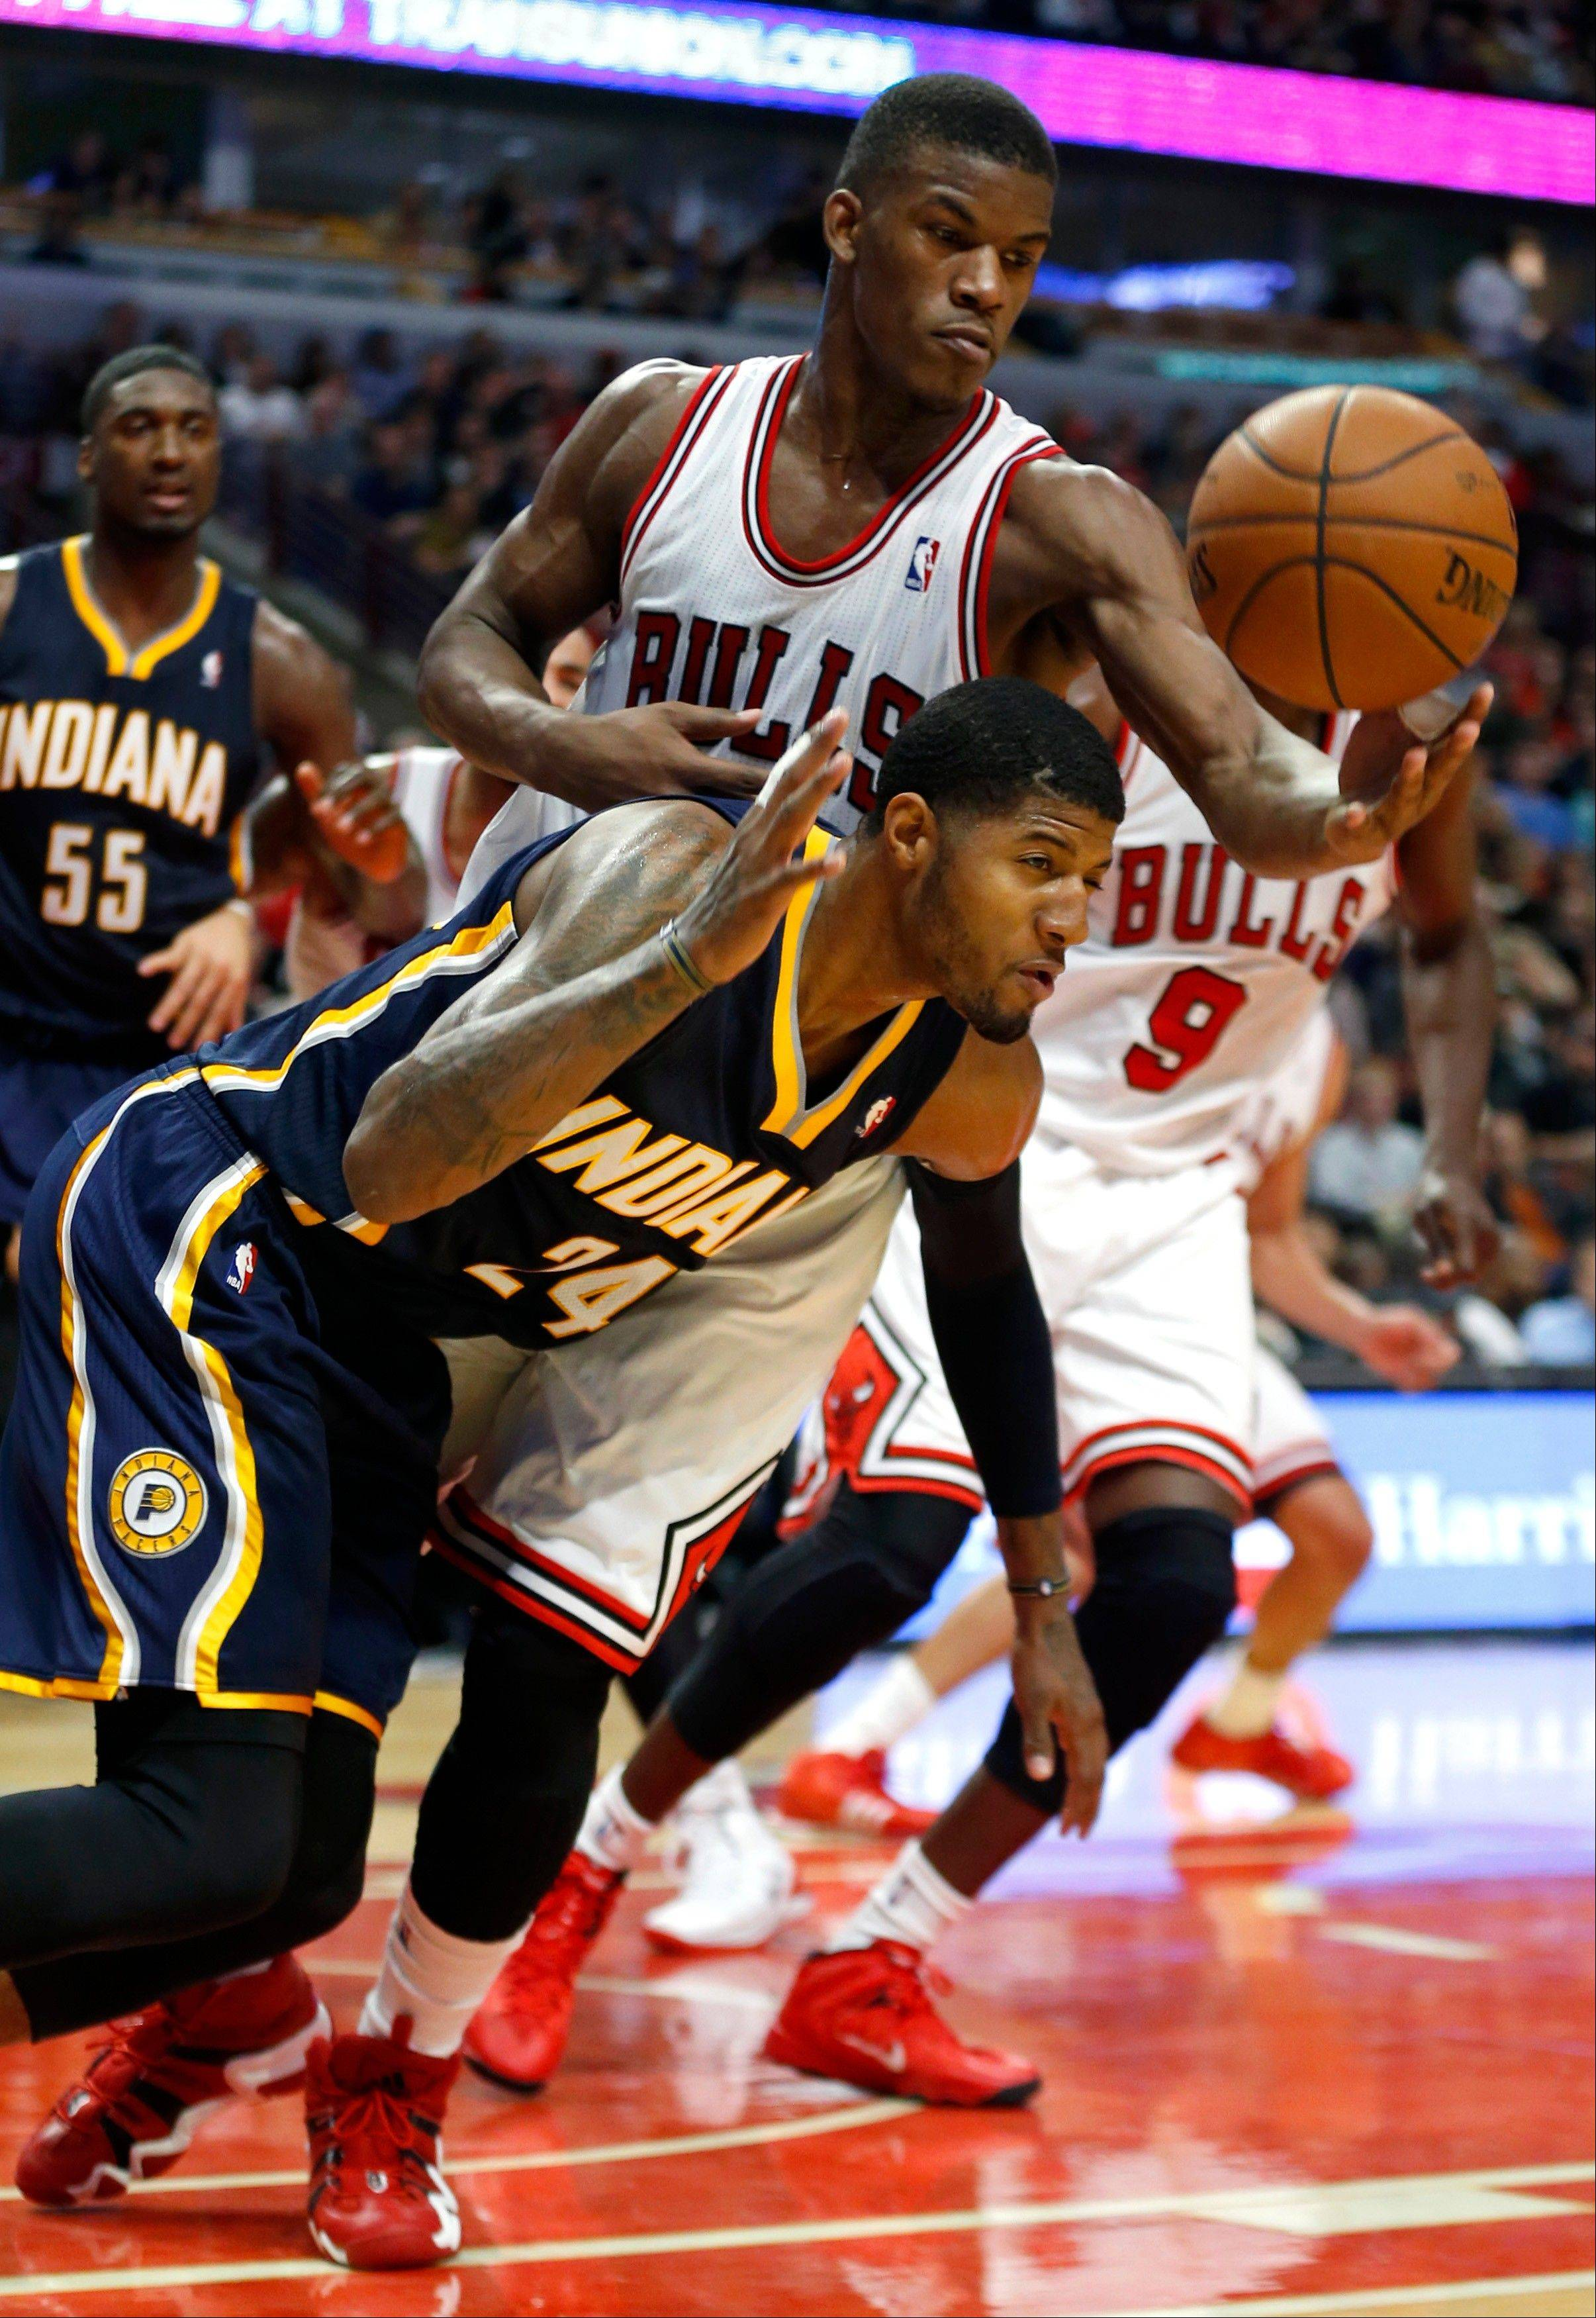 Indiana Pacers forward Paul George (24) vies for the ball with Bulls guard Jimmy Butler on Saturday. Butler injured a toe against Charlotte on Monday.